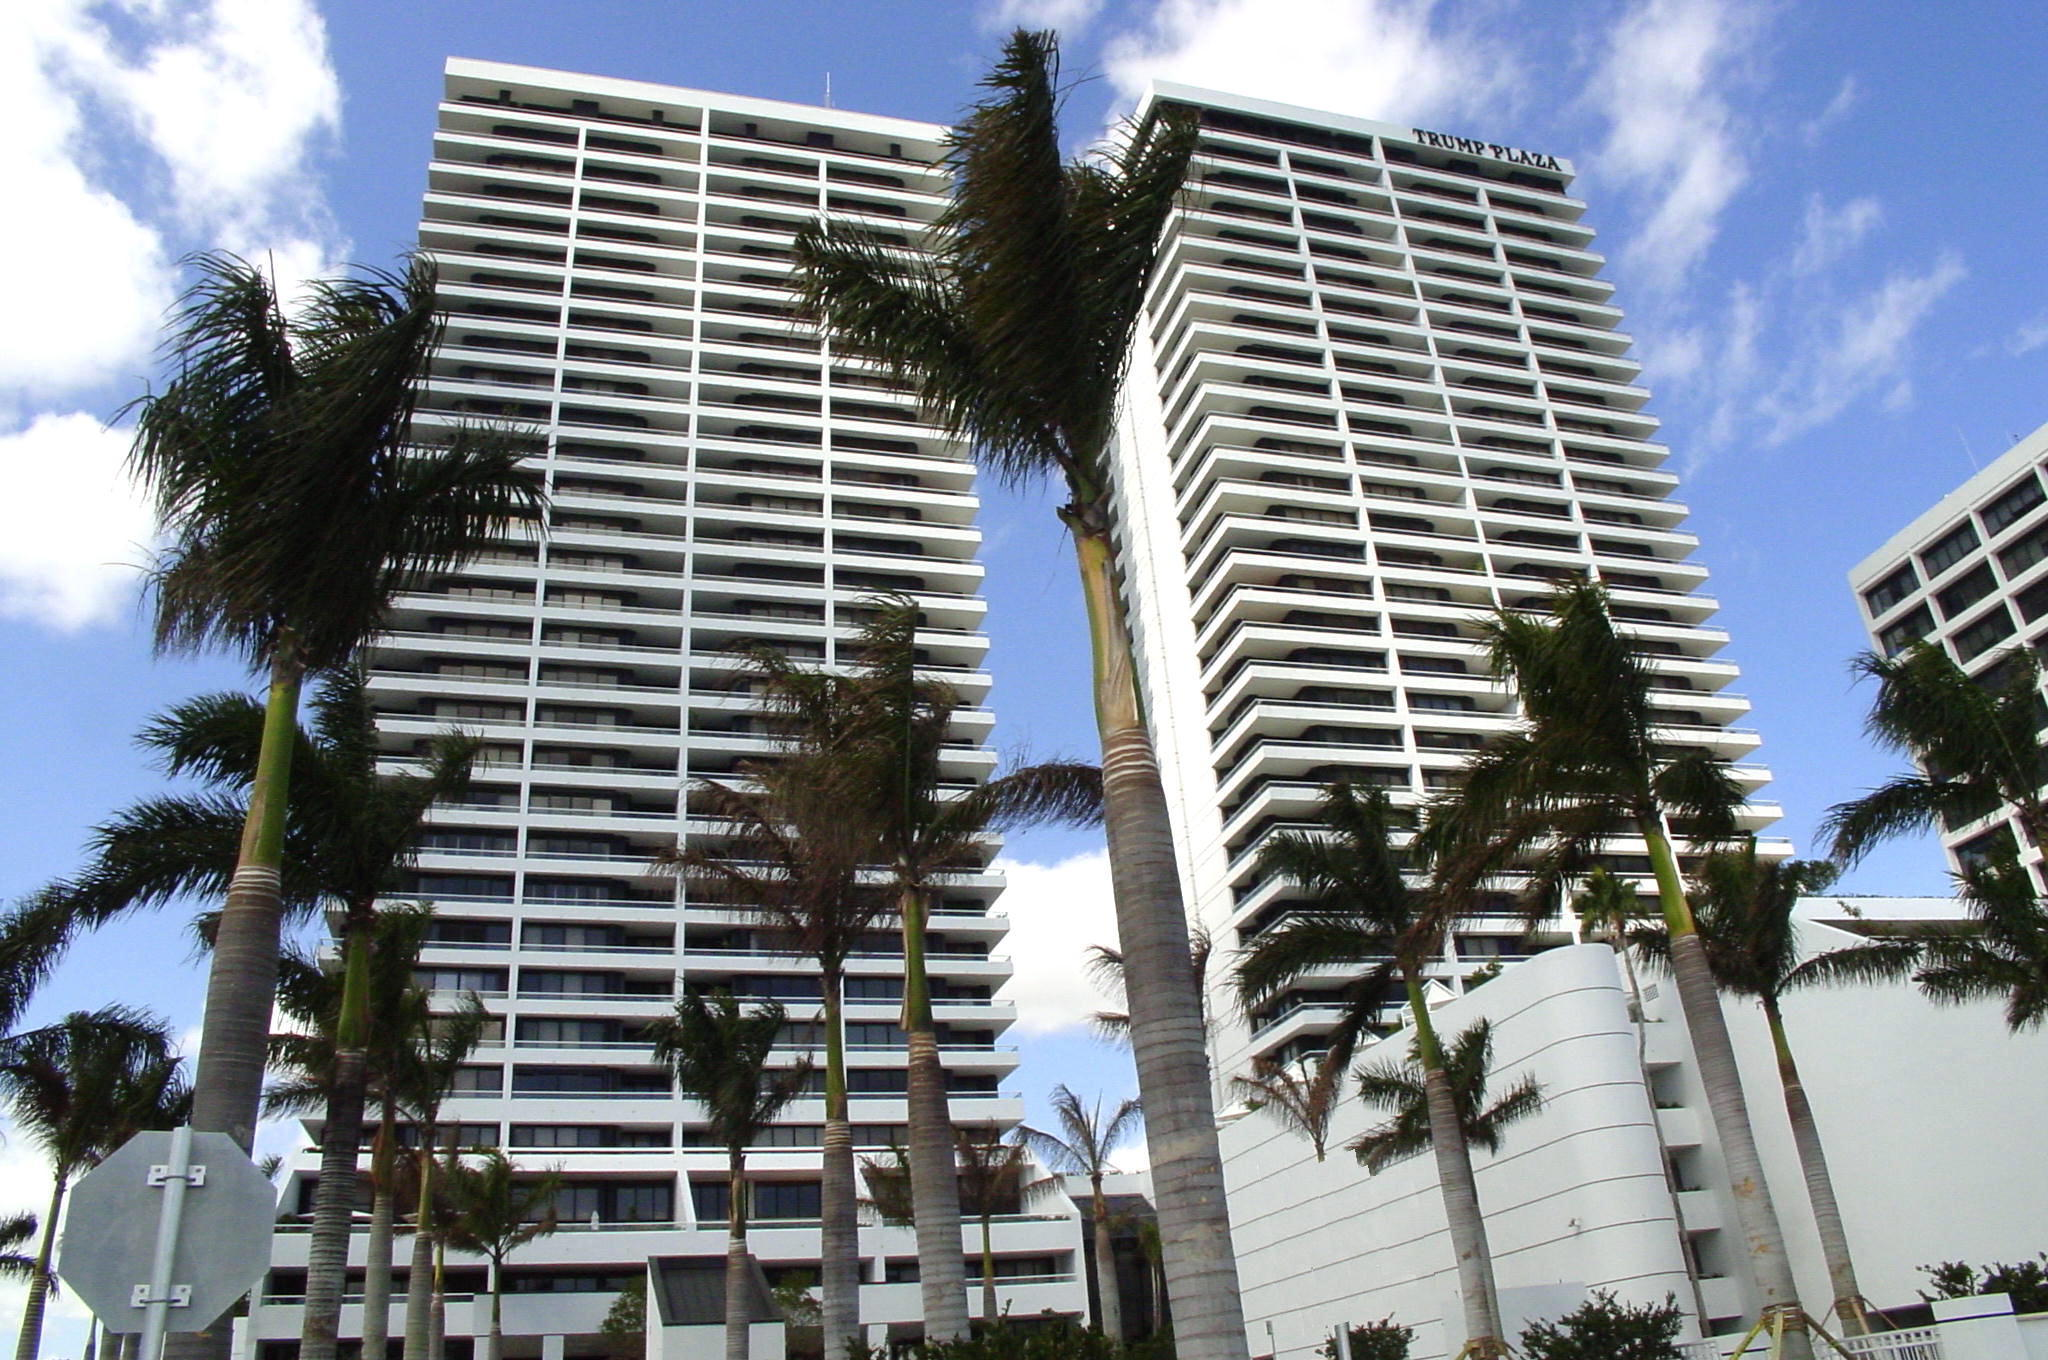 Home for sale in TRUMP PLAZA OF THE PALM BEACHES CONDO West Palm Beach Florida